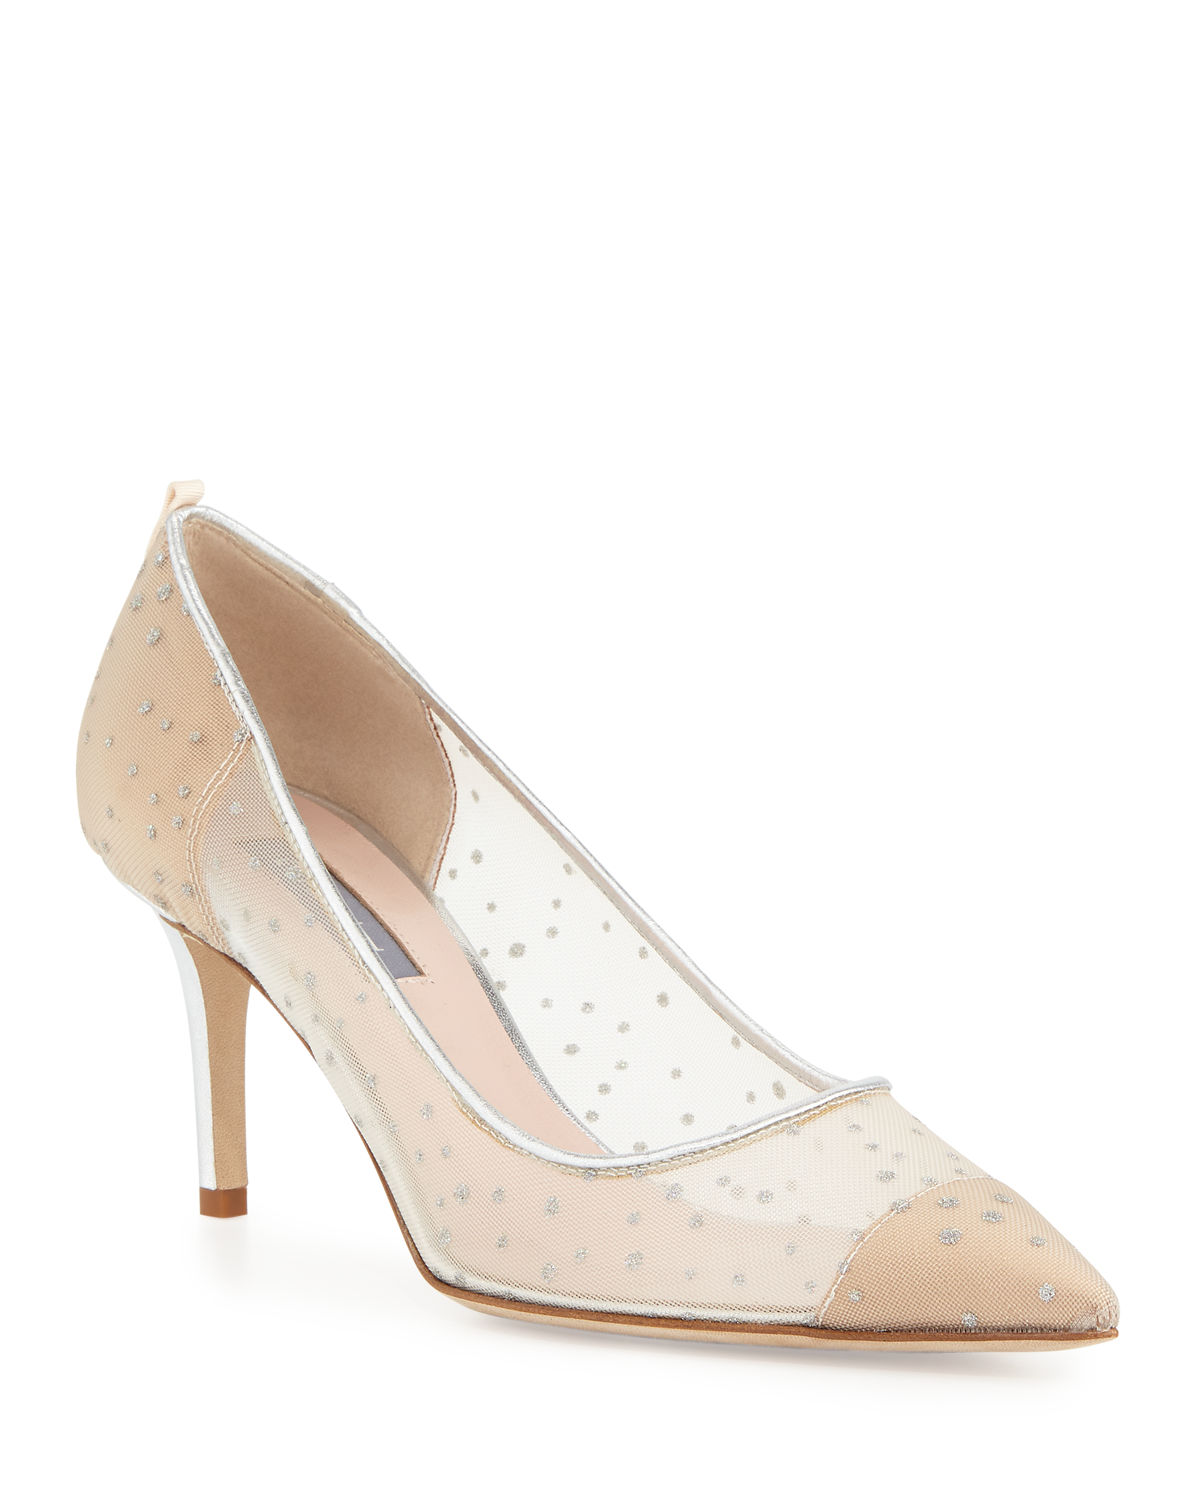 09c3e09ca34 Sjp By Sarah Jessica Parker Glass 70Mm Mesh Pumps In Silver